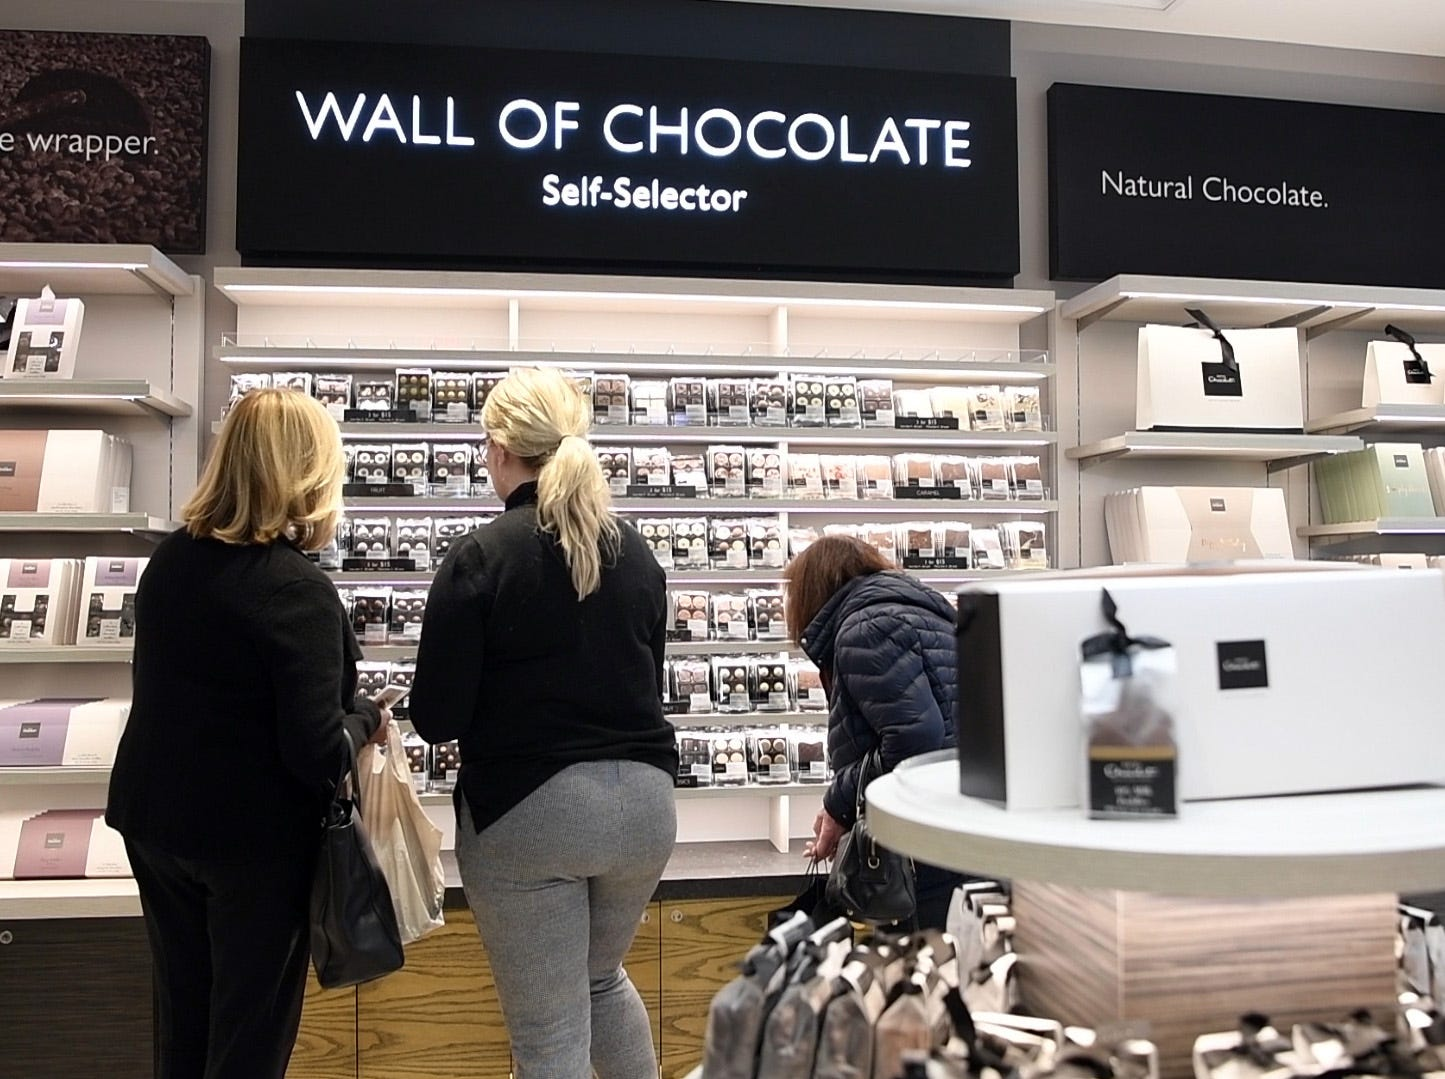 The wall of chocolate at Hotel Chocolat in Westfield Garden State Plaza on Wednesday, March 13, 2019, in Paramus.